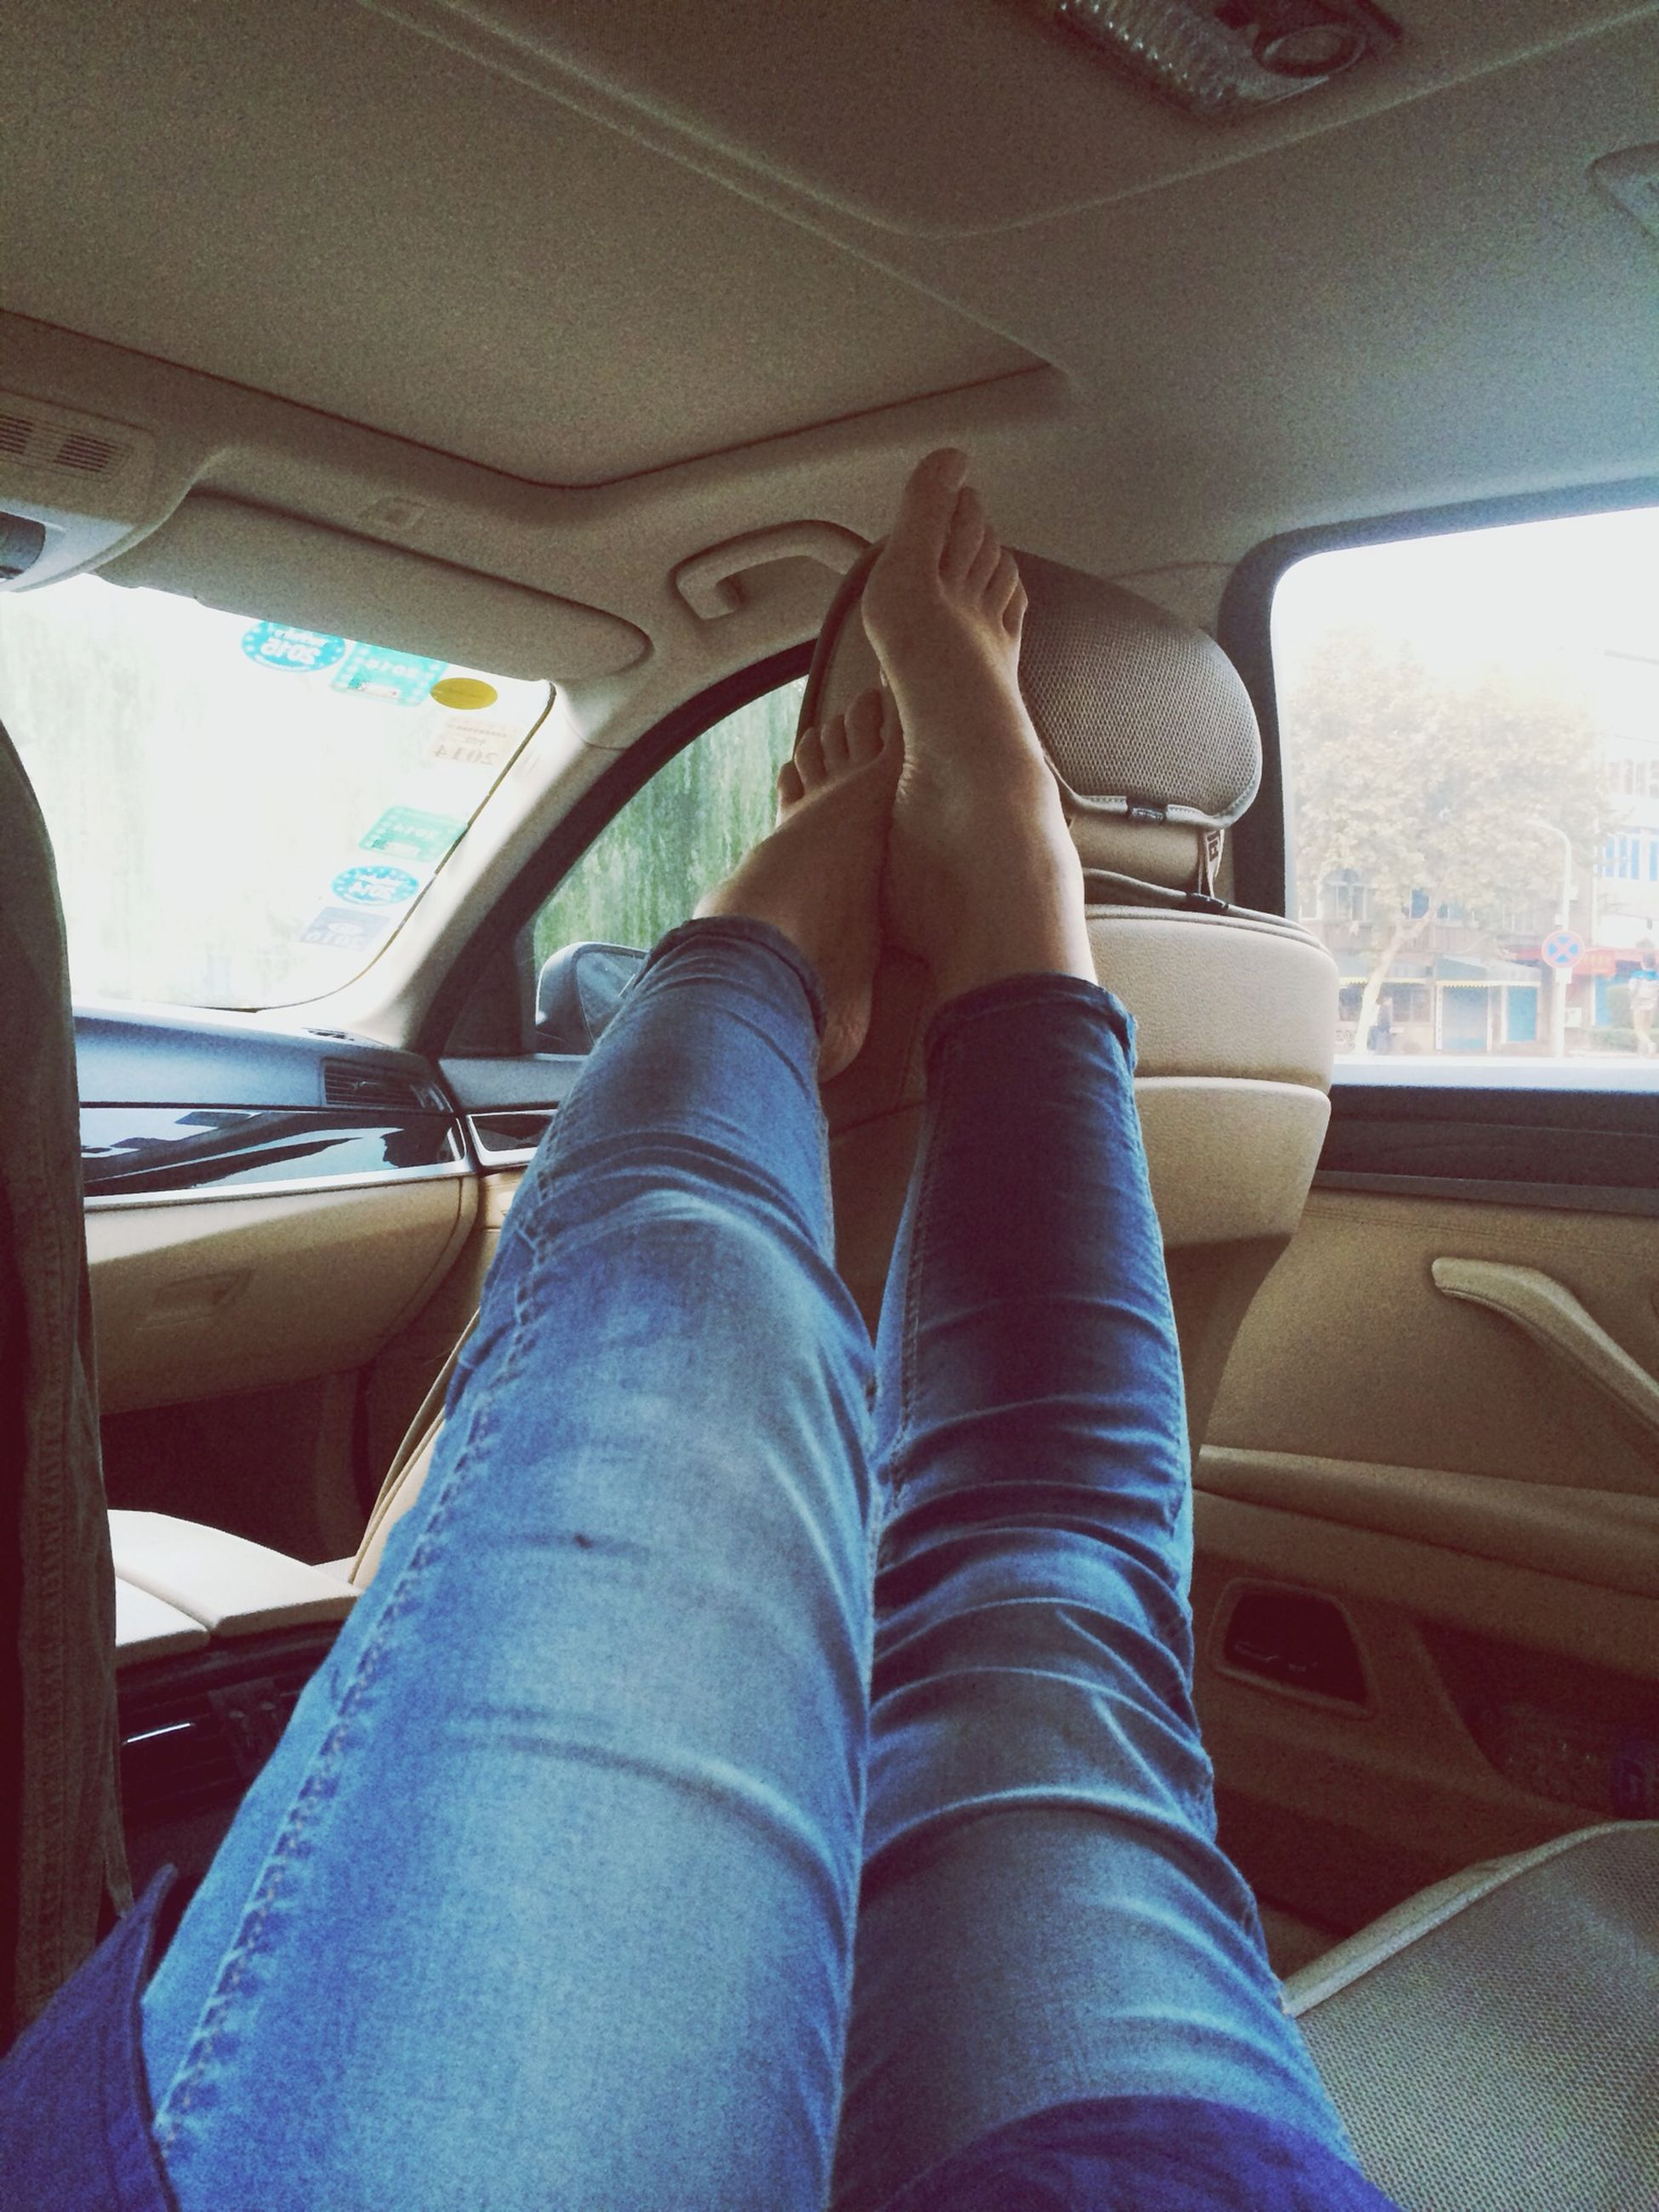 person, low section, indoors, personal perspective, sitting, lifestyles, relaxation, vehicle interior, shoe, jeans, human foot, leisure activity, legs crossed at ankle, transportation, men, casual clothing, mode of transport